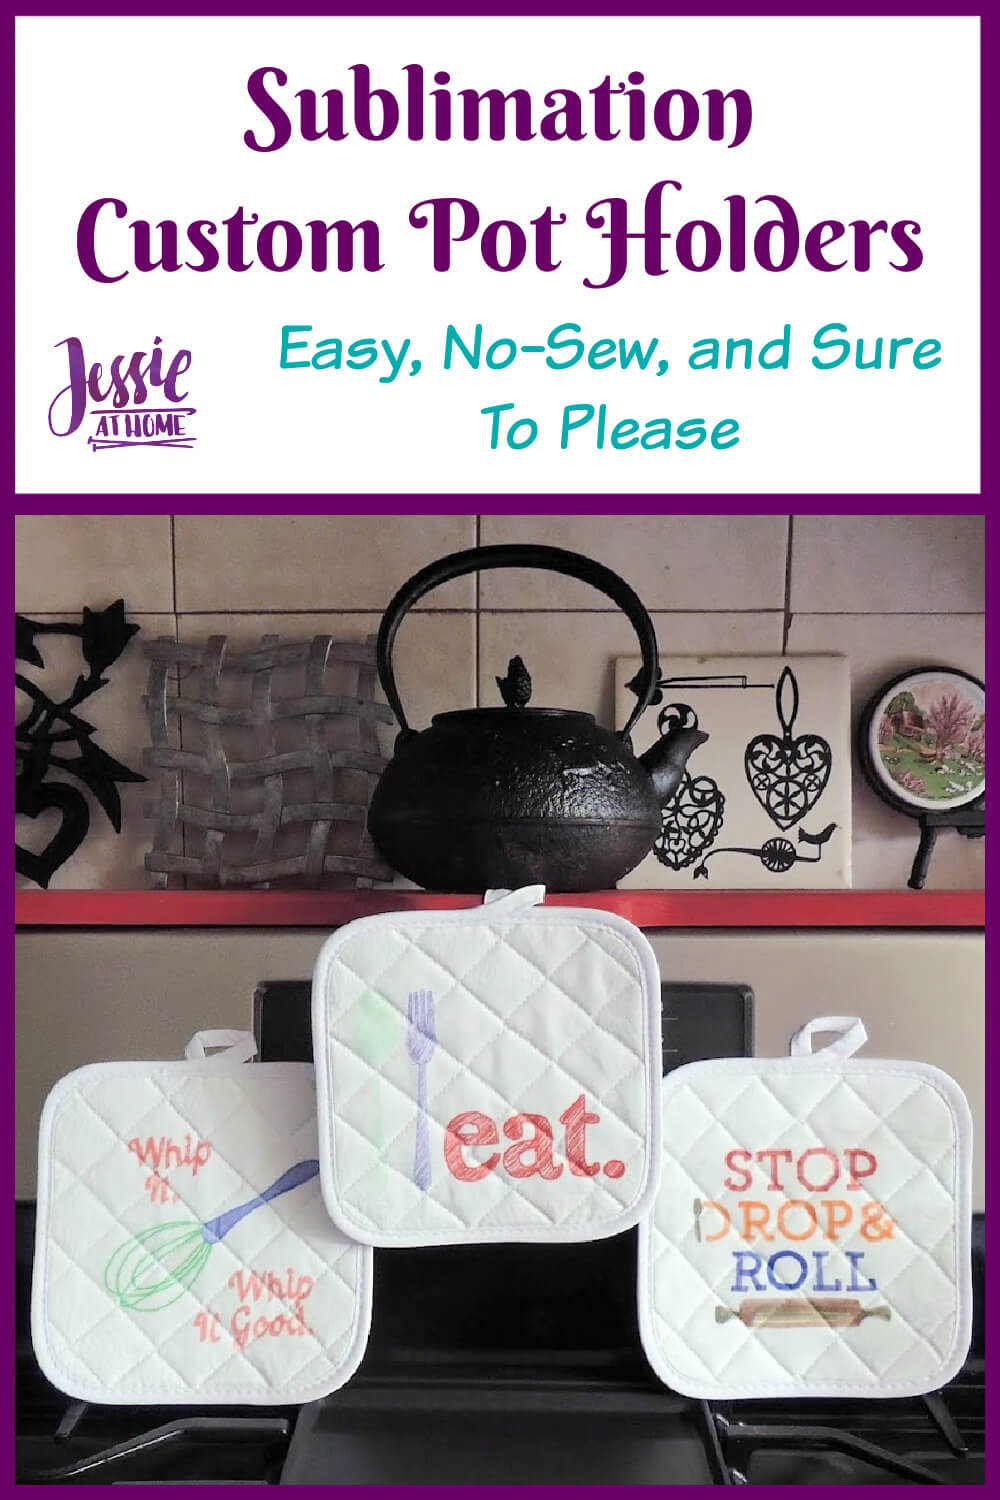 """A white vertical rectangle with purple boarder. On the top third is text """"Sublimation custom pot holders"""" and """"Easy, No-Sew, and Sure To Please"""" and """"Jessie At Home"""". The bottom two thirds is a photo of 3 pot holders on a stove top, one with a drawing of a whisk and """"whip it, whip it good"""", one with a drawing of a spoon and fork and """"eat."""", and one with """"stop, drop & roll"""" and a drawing of a rolling pin."""